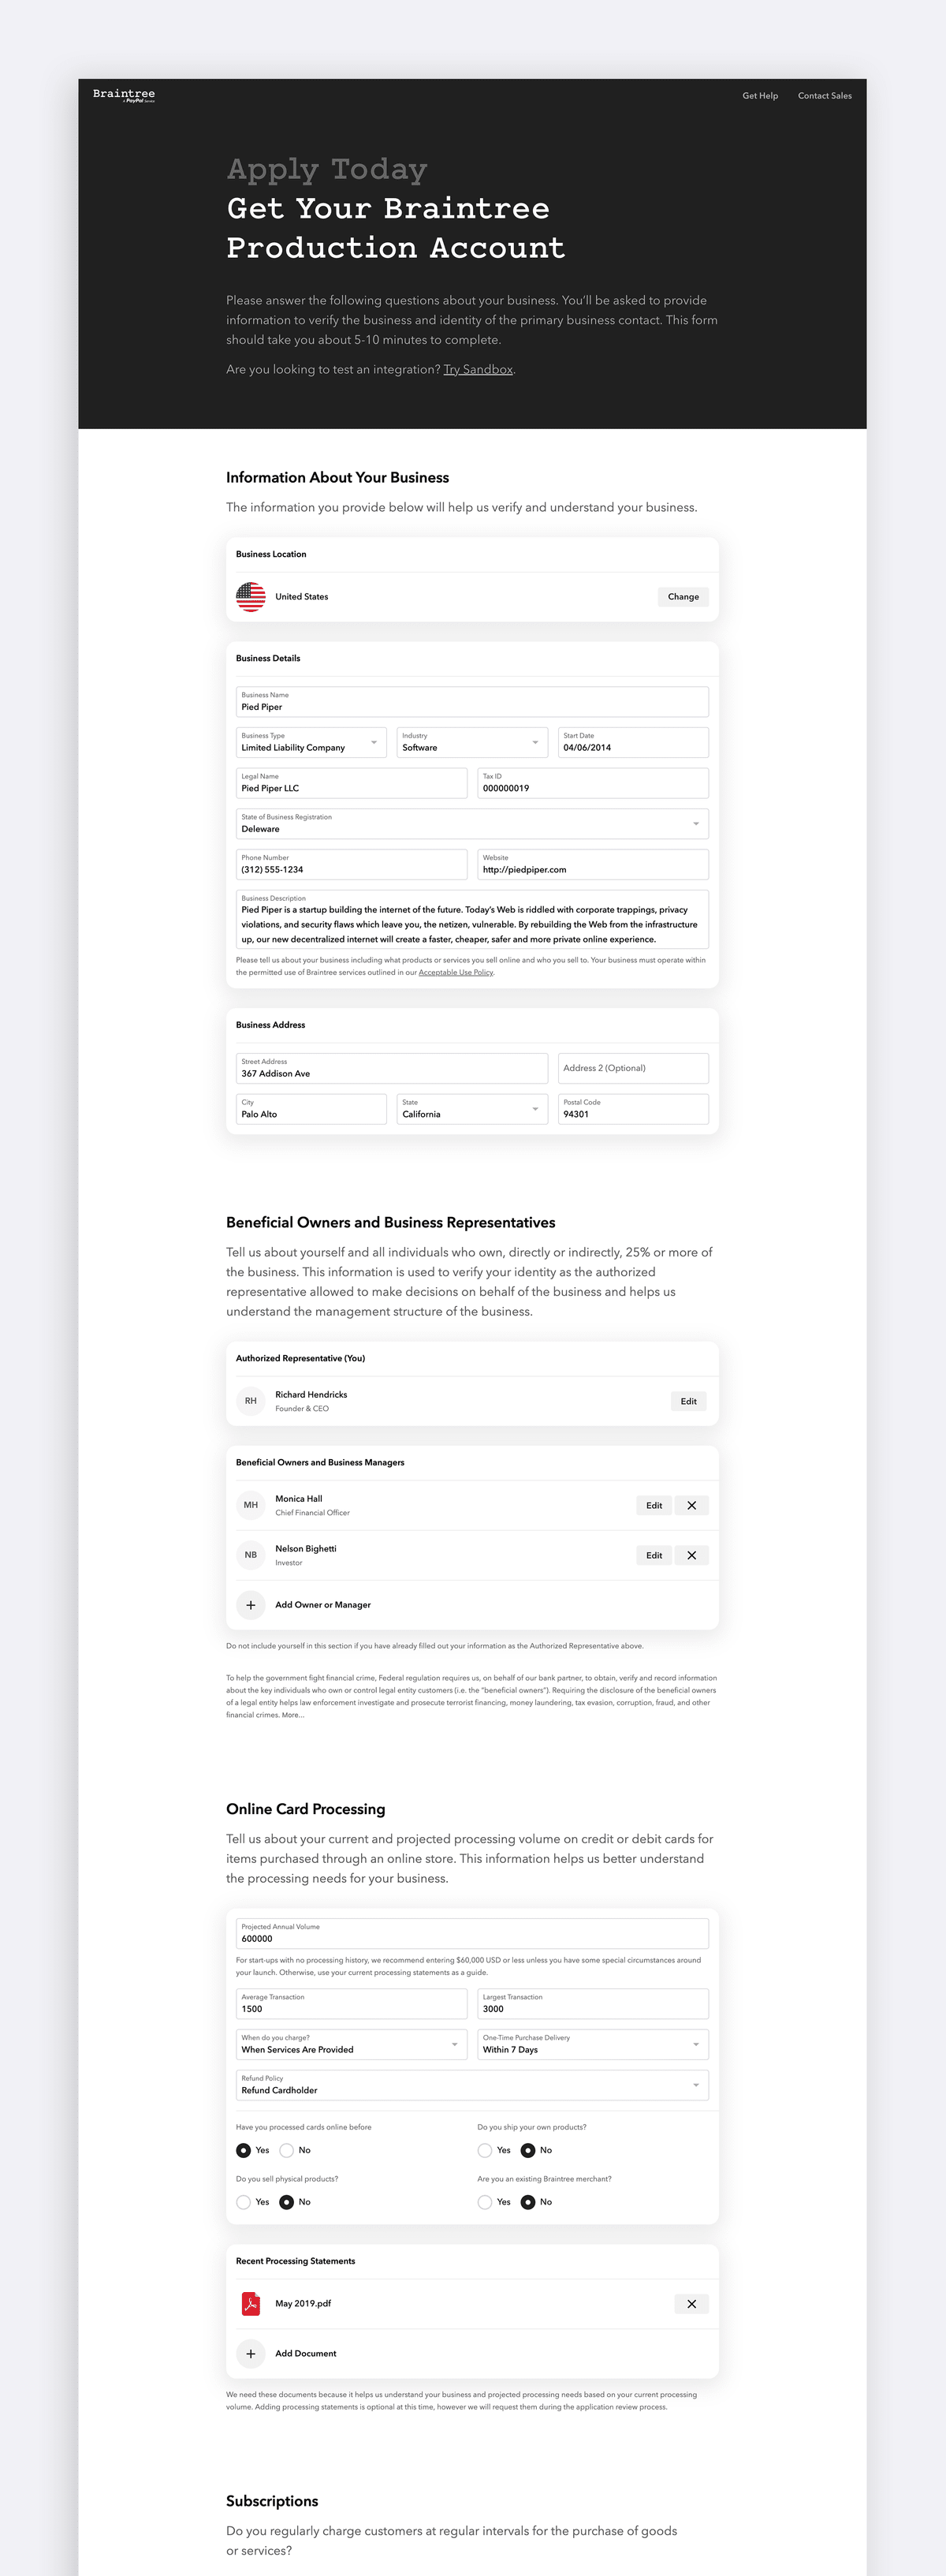 Braintree Onboarding Form - USA